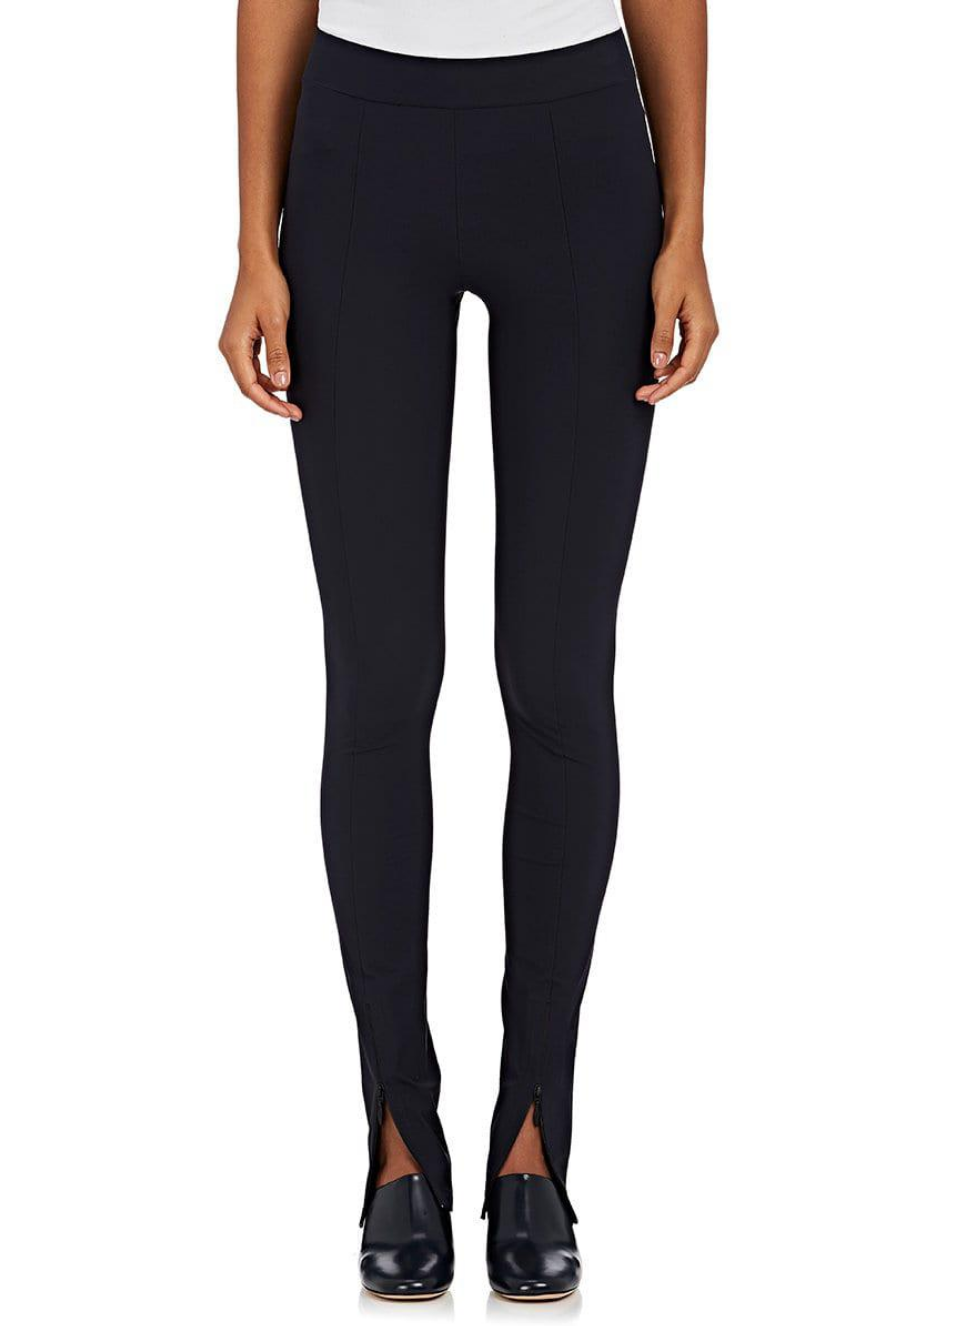 New  490 The Row Nelma Zip Cuff Stretch Jersey Leggings Pants in Dark Navy sz L